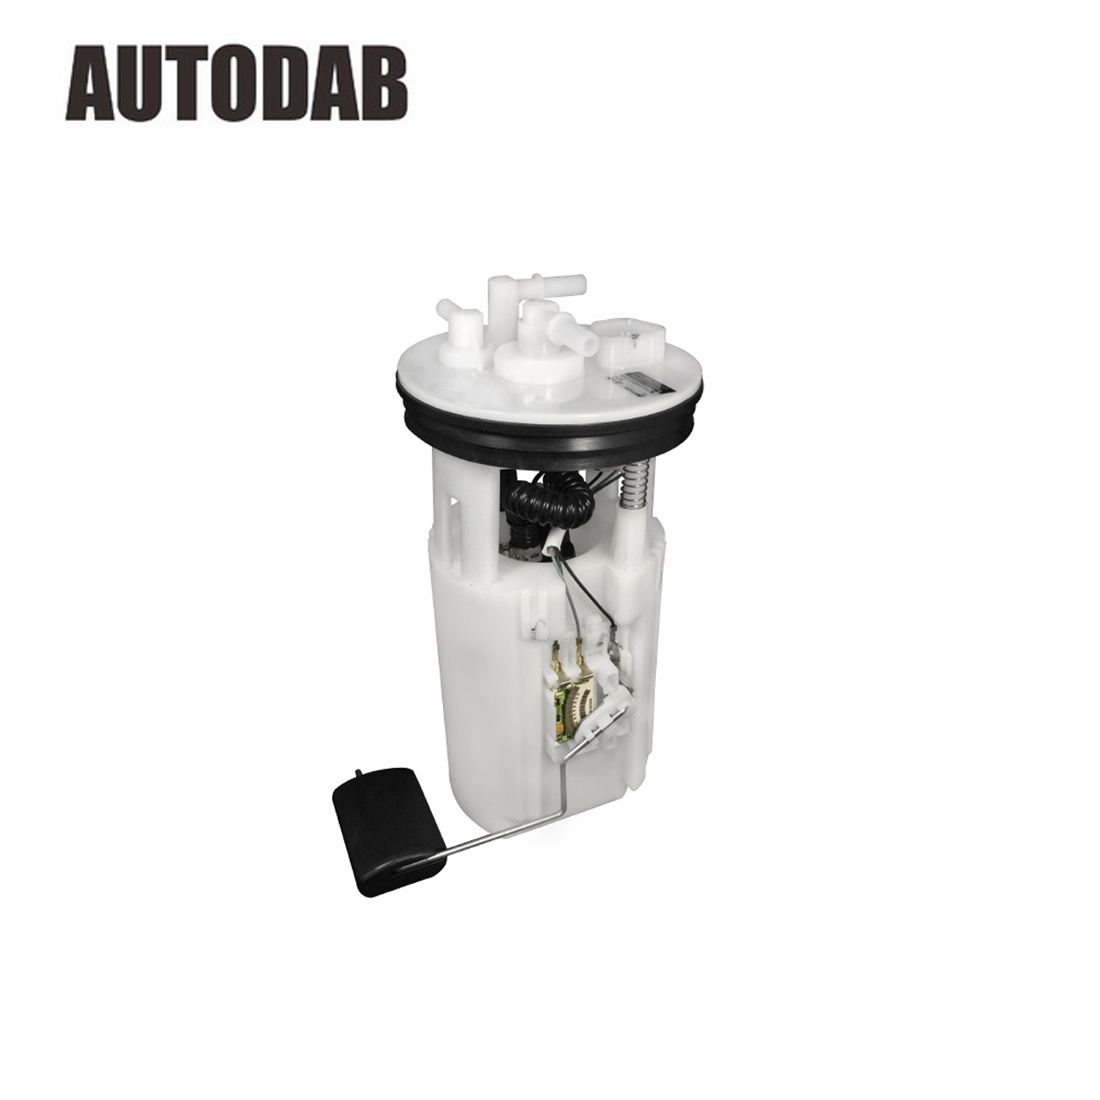 High Quality fuel pump assembly for Kia 31110 25010 31110 25000 DSF XD011 01051019 013